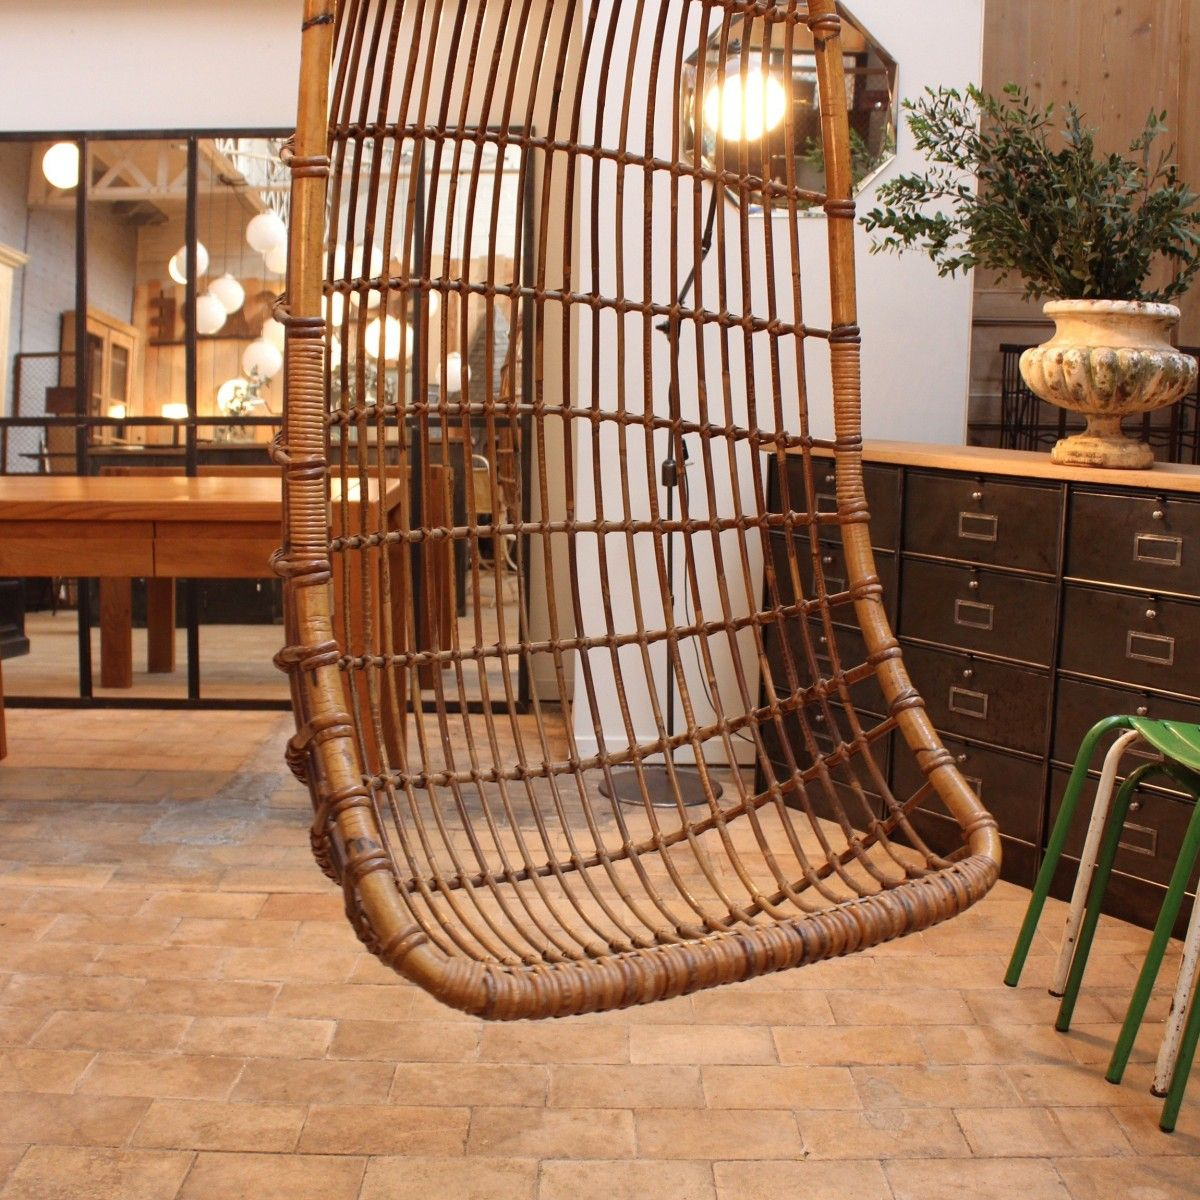 Hanging Rattan Egg Chair, 1960s 4. $932.00. Price Per Piece